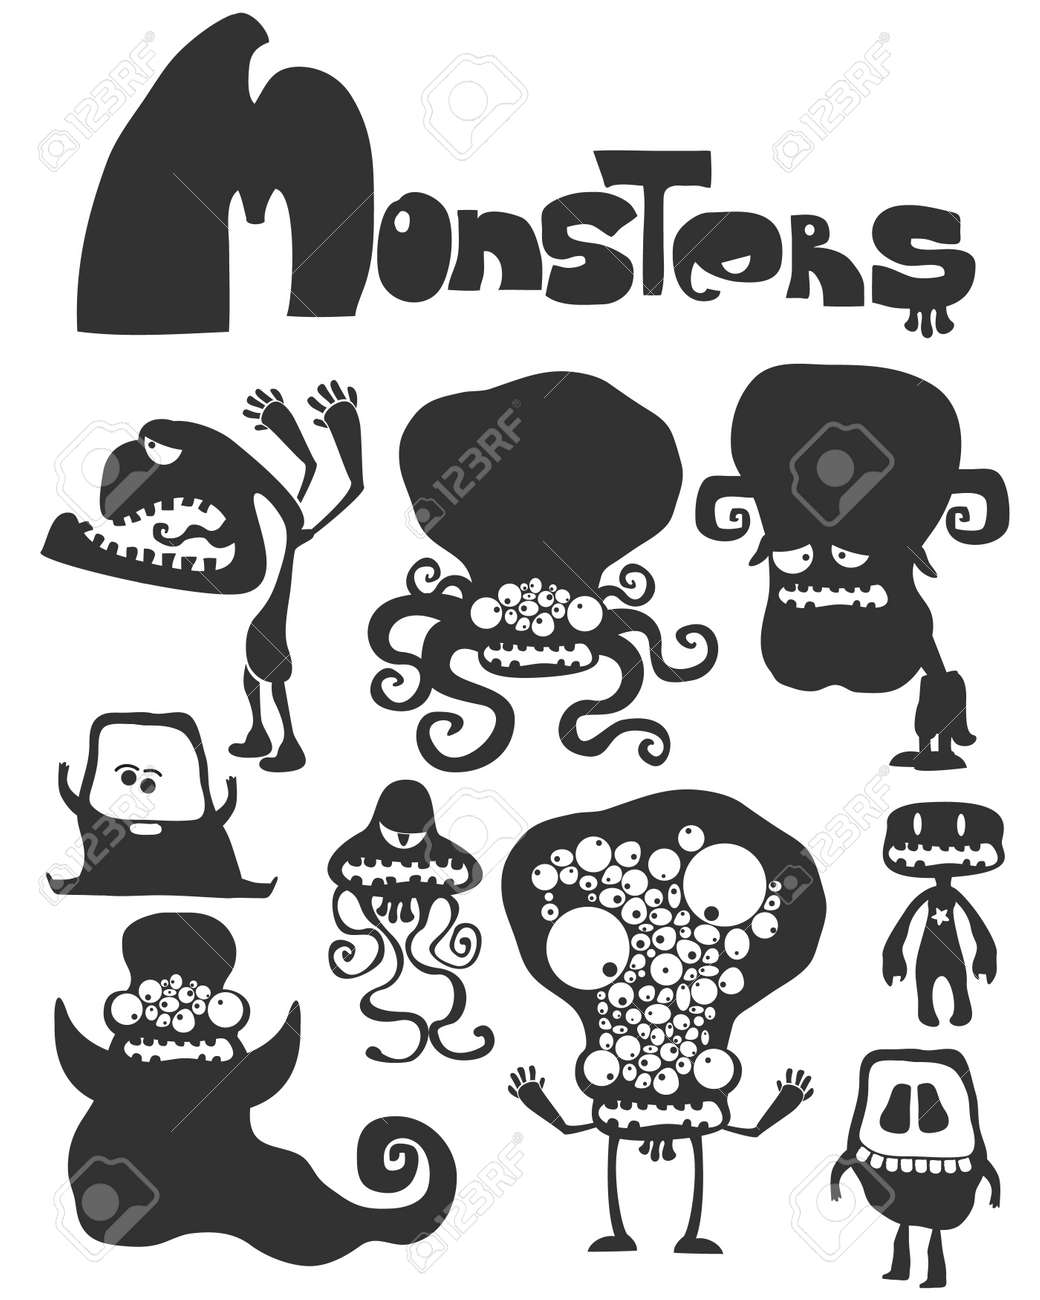 The set of monsters. Stock Vector - 20630553